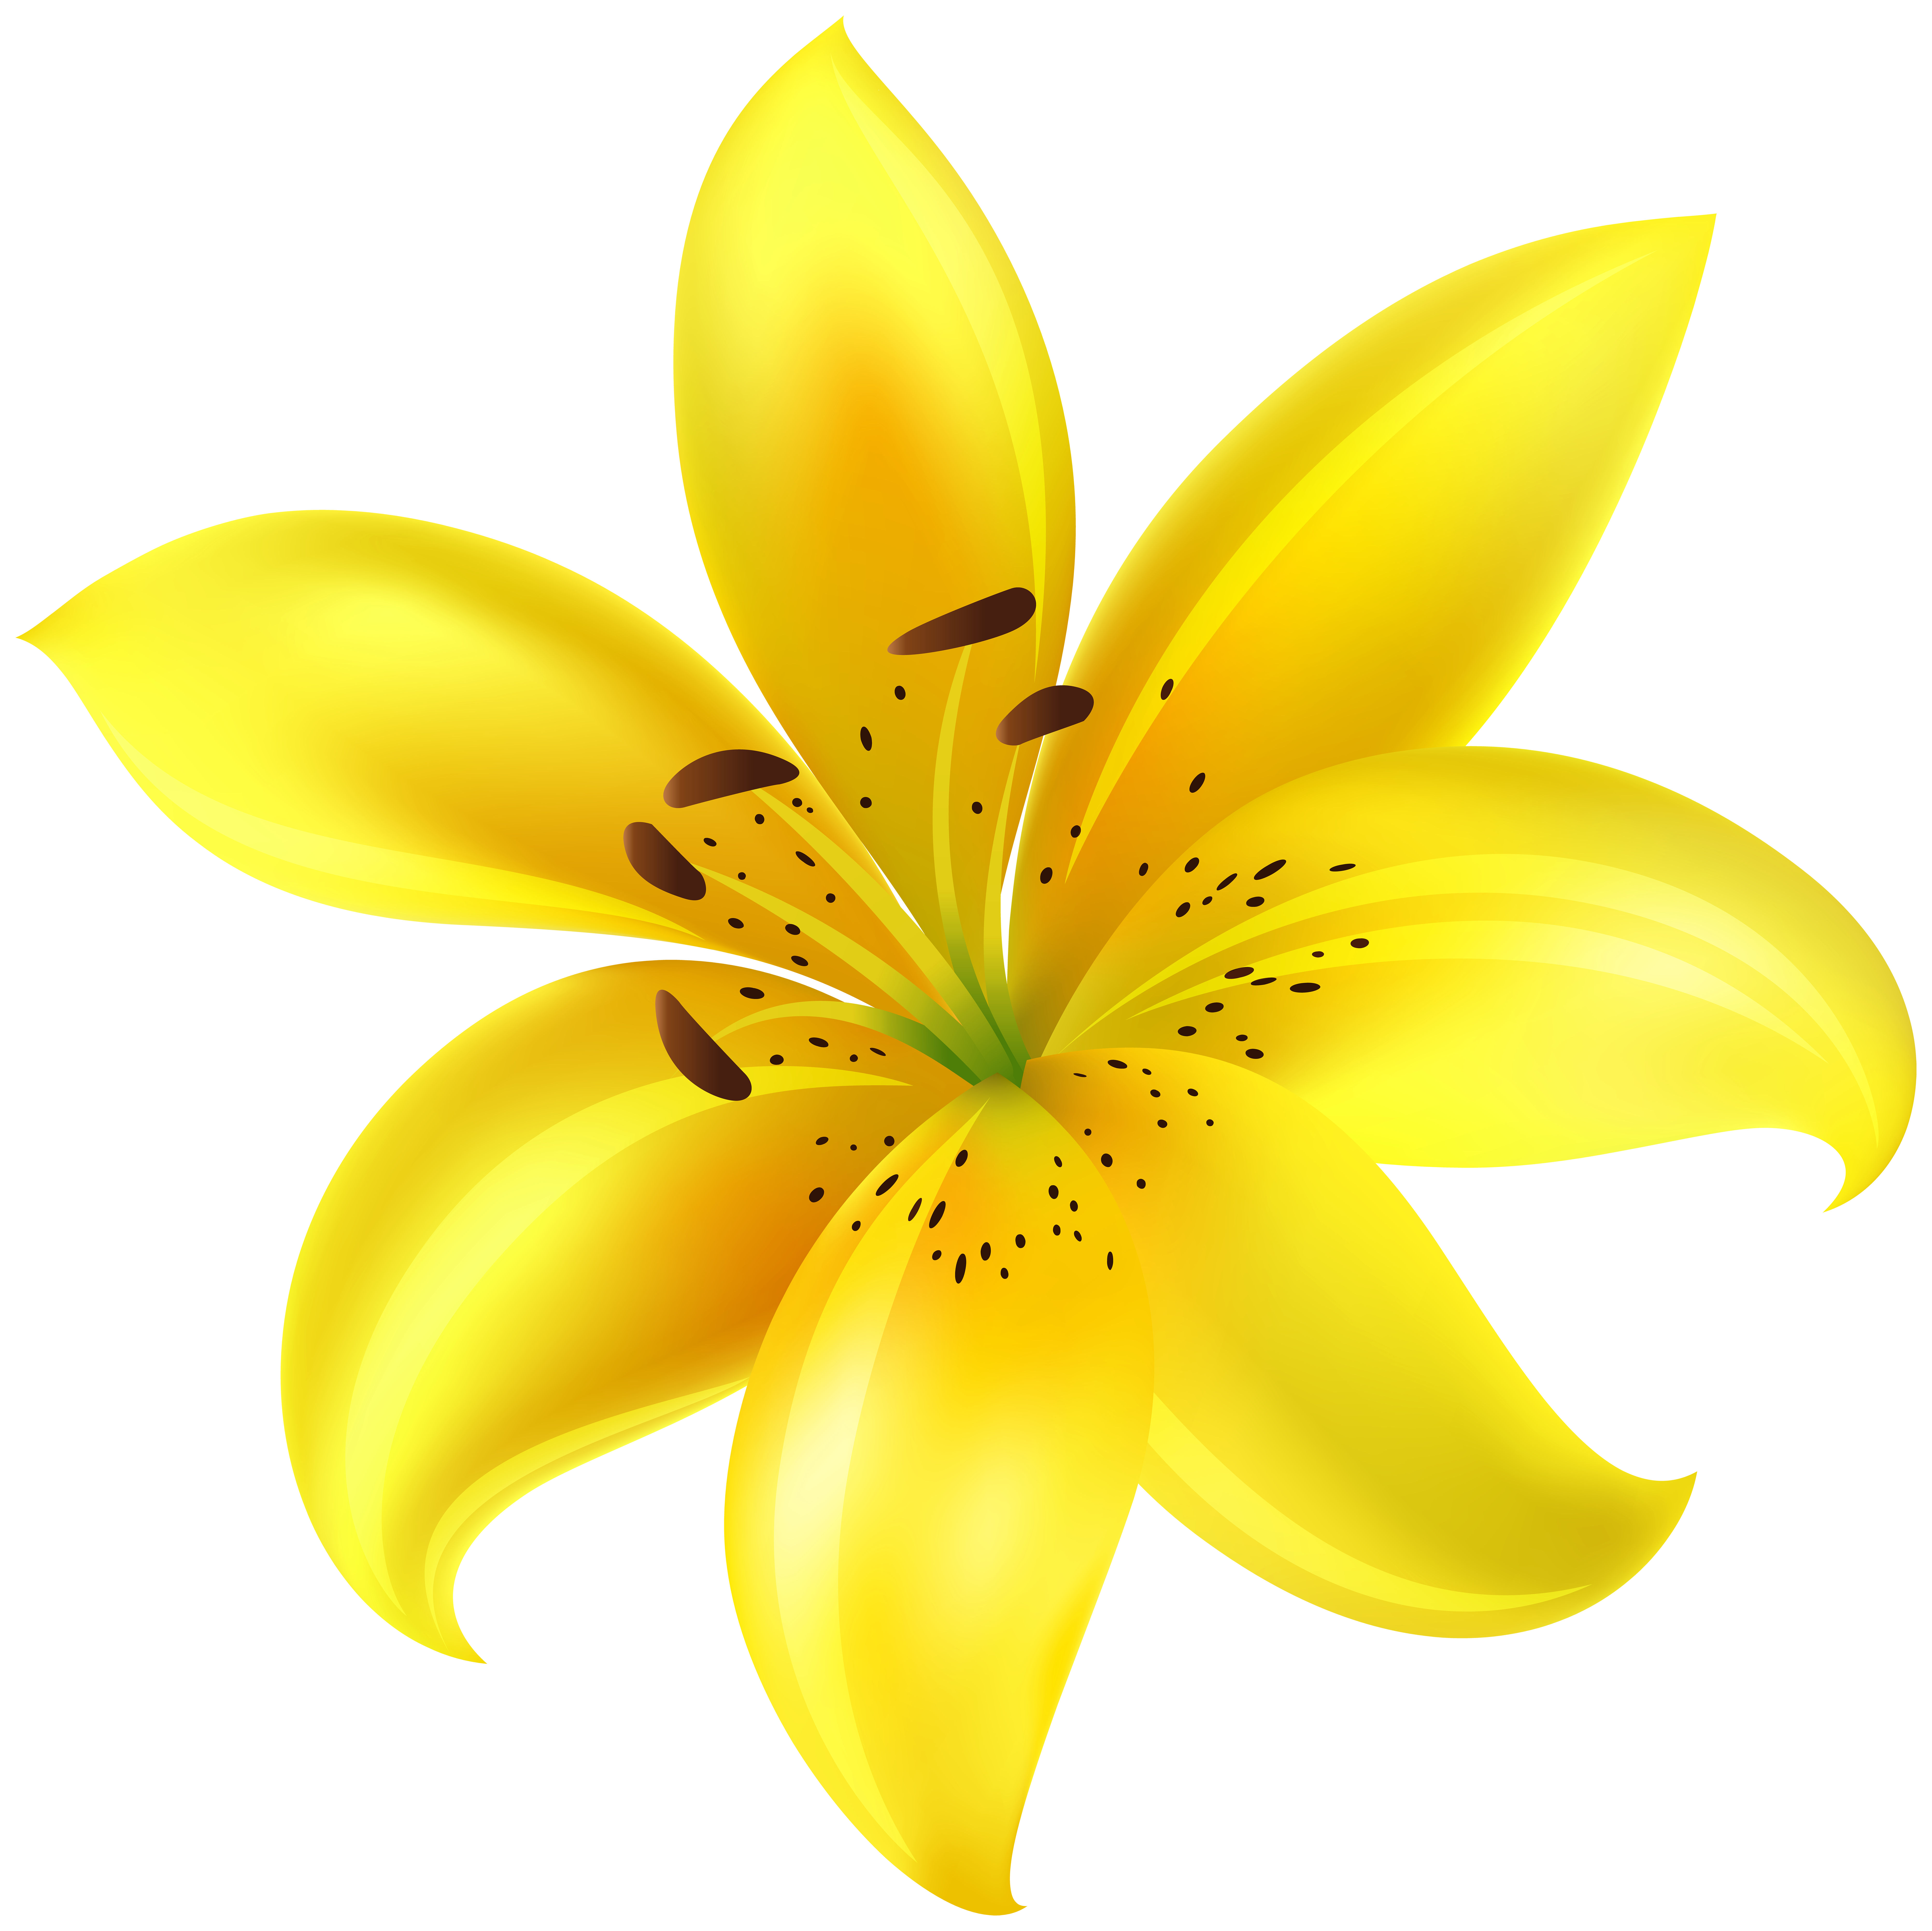 Yellow Flower Clip Art Image.